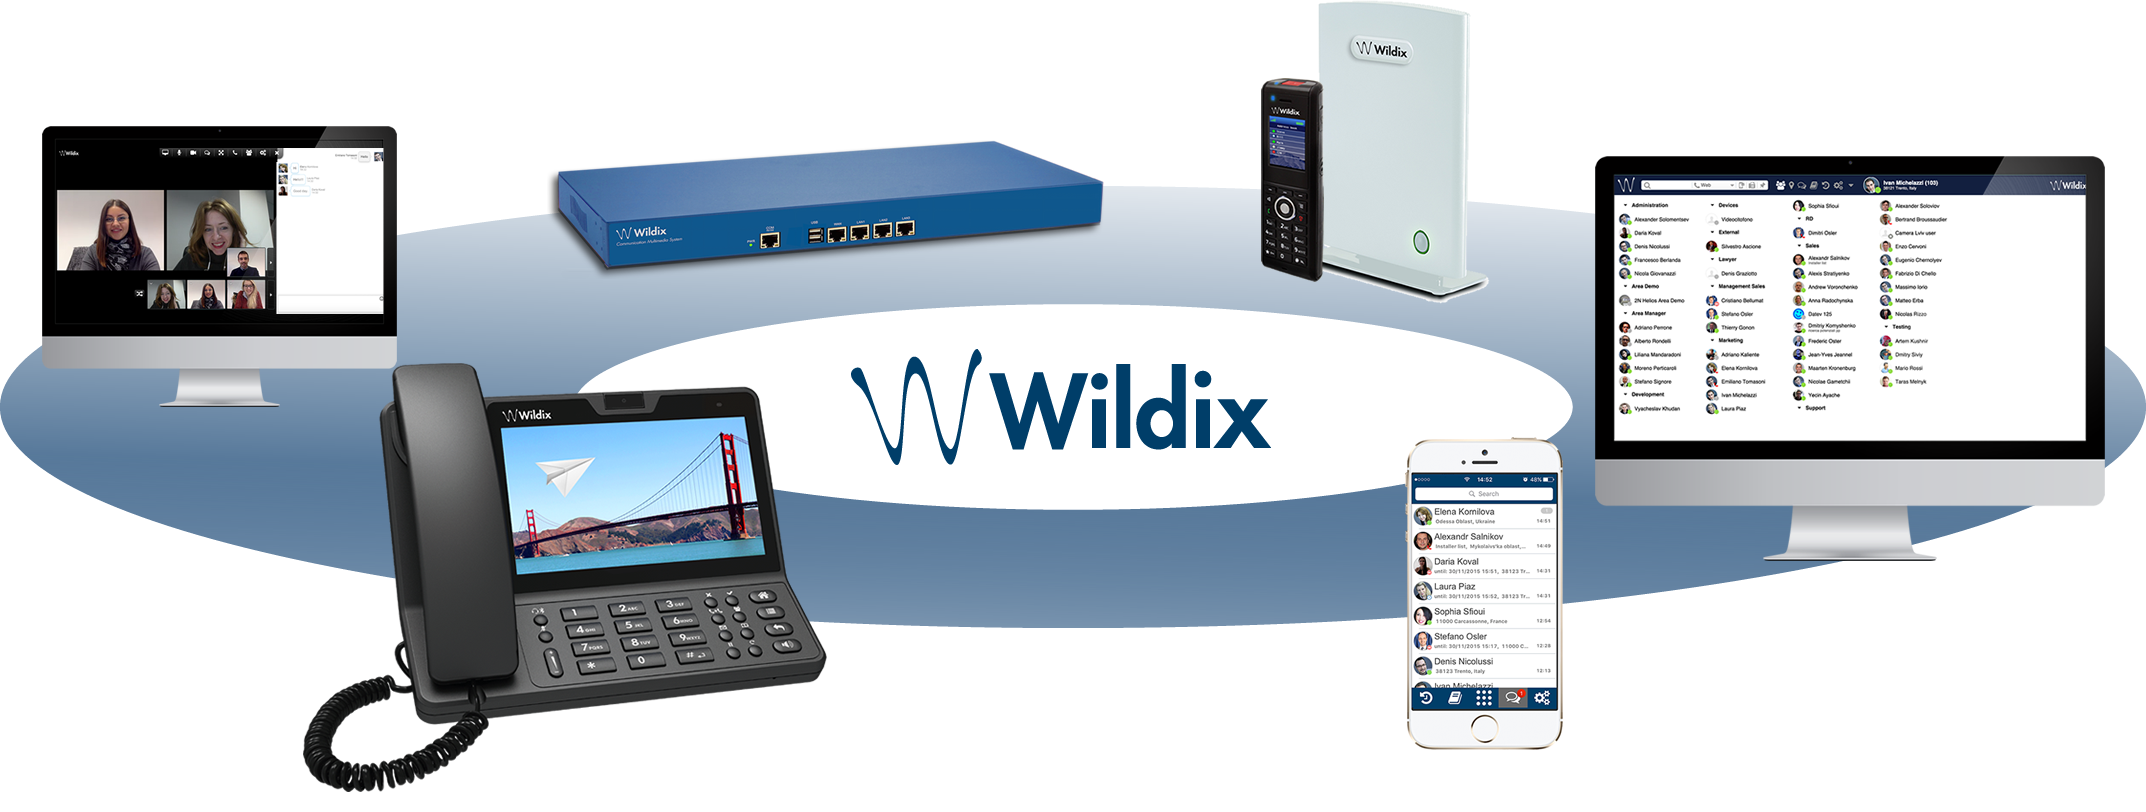 Wildix-administration-software-2016